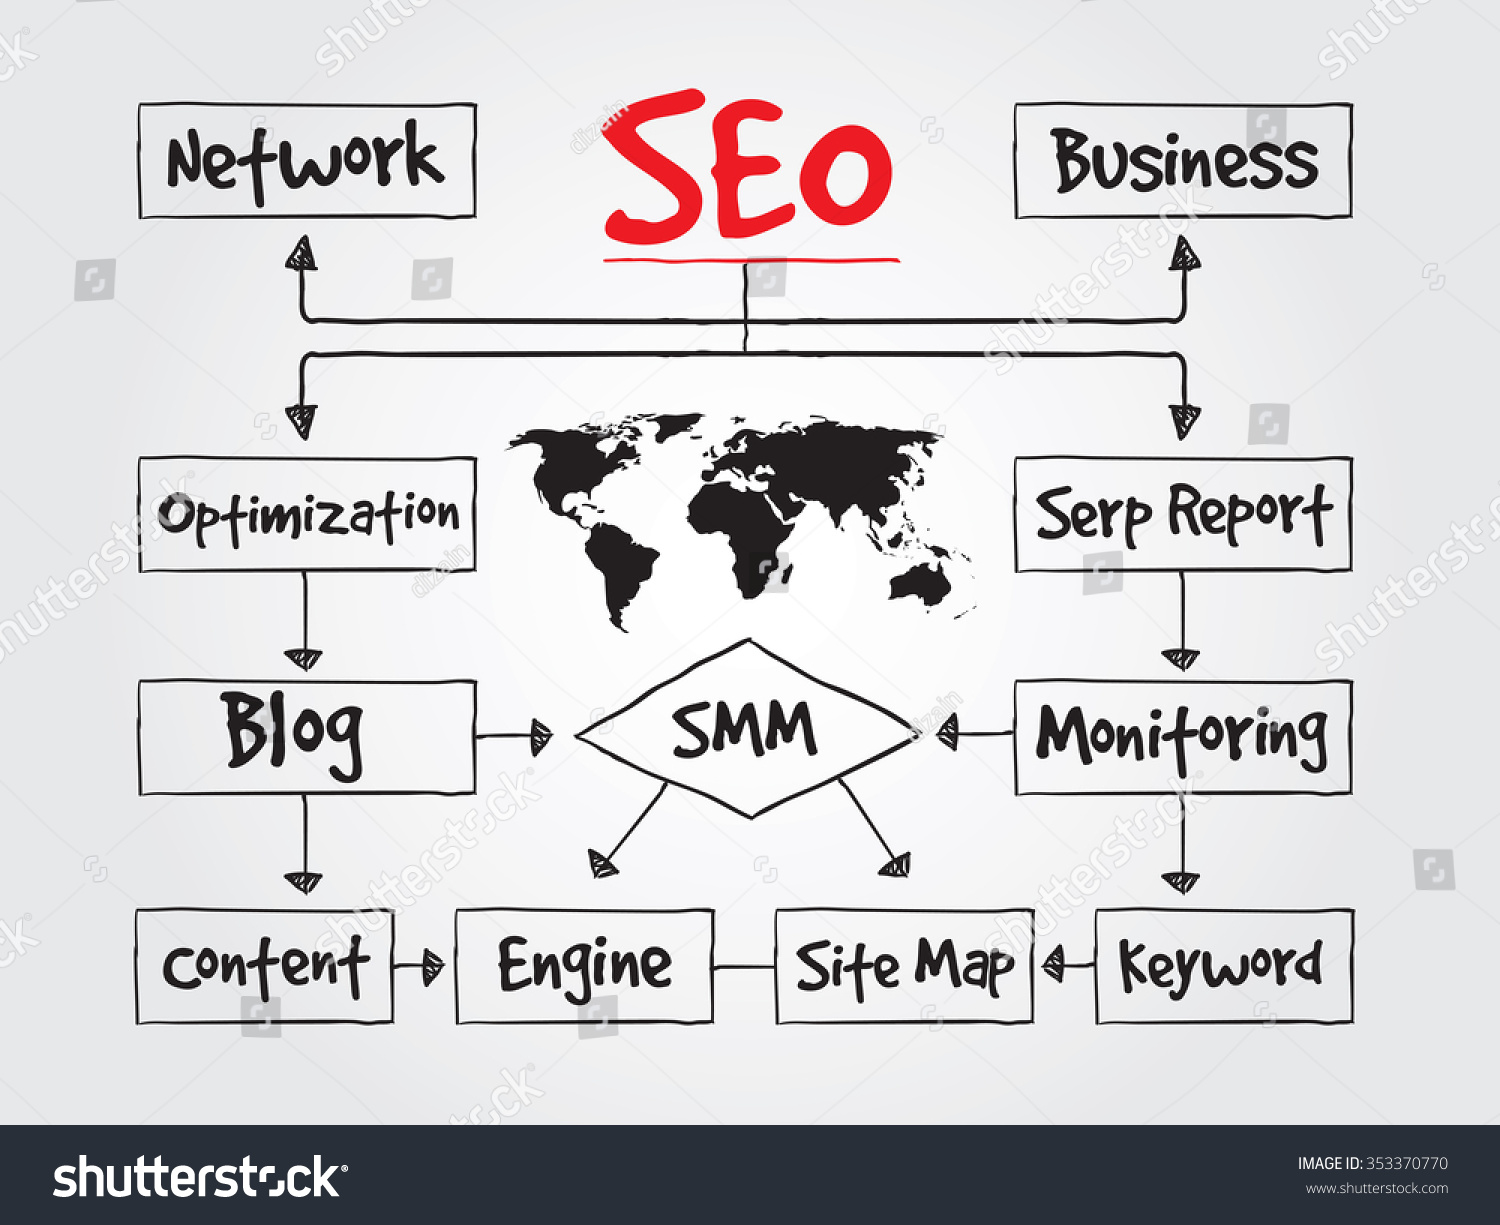 Seo Process Flow Chart Presentations Reports Stock Illustration Engine Diagram For And Business Concept